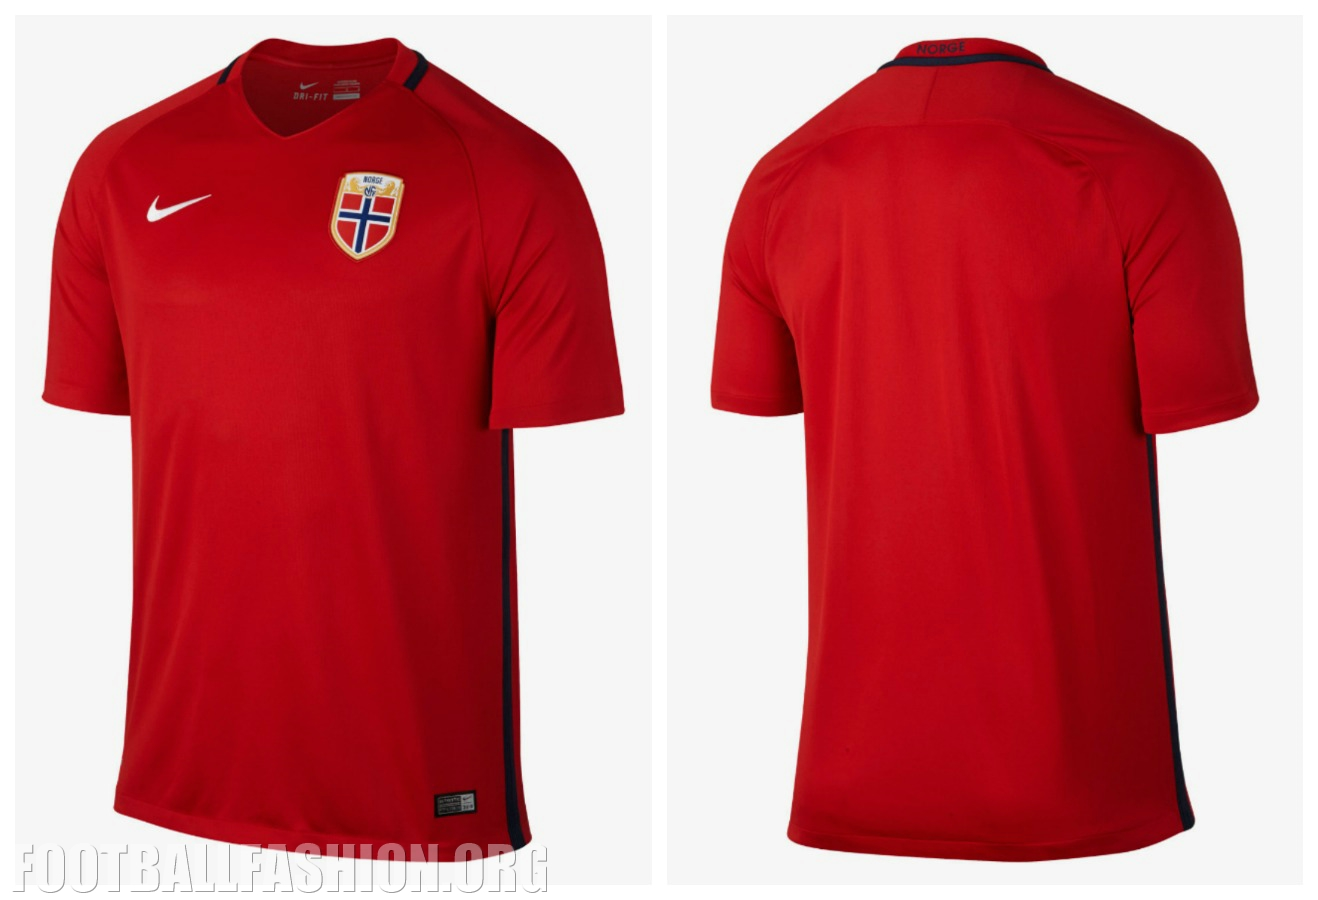 Norway 2016 17 nike home and away kits football fashion org for Navy blue and white nike shirt